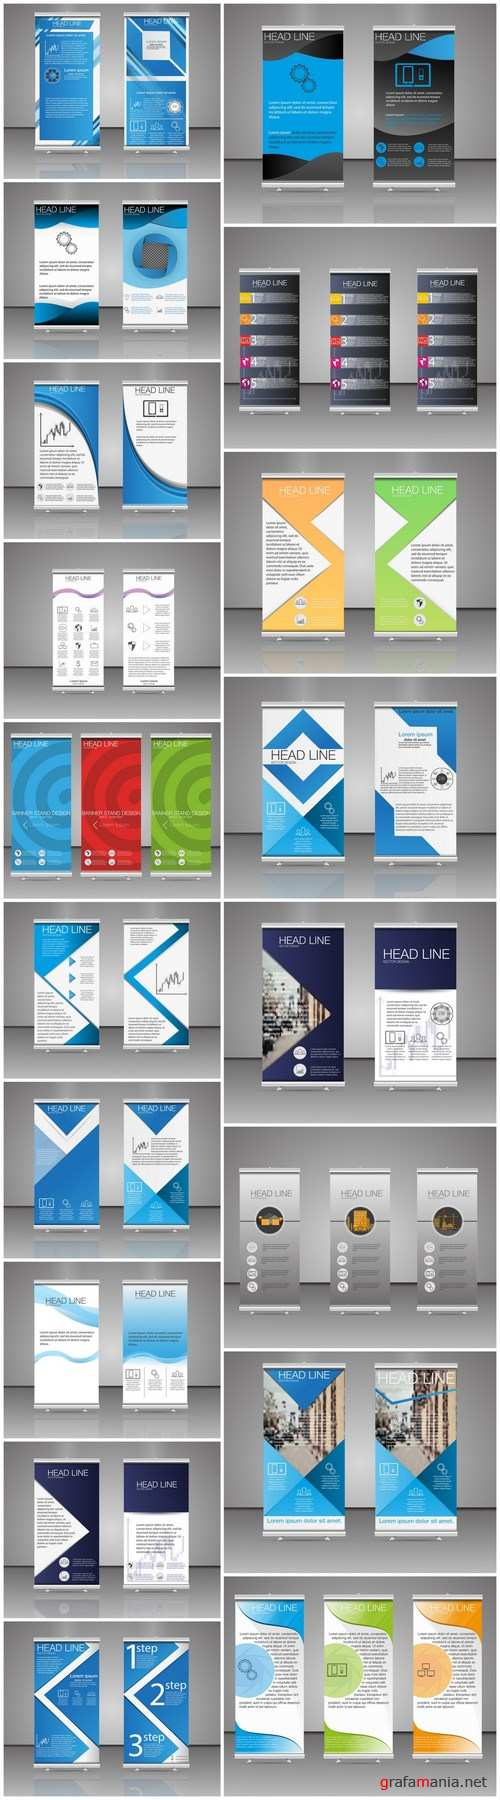 Corporate vertical vector flyer & roll up banner 4 - 18xEPS